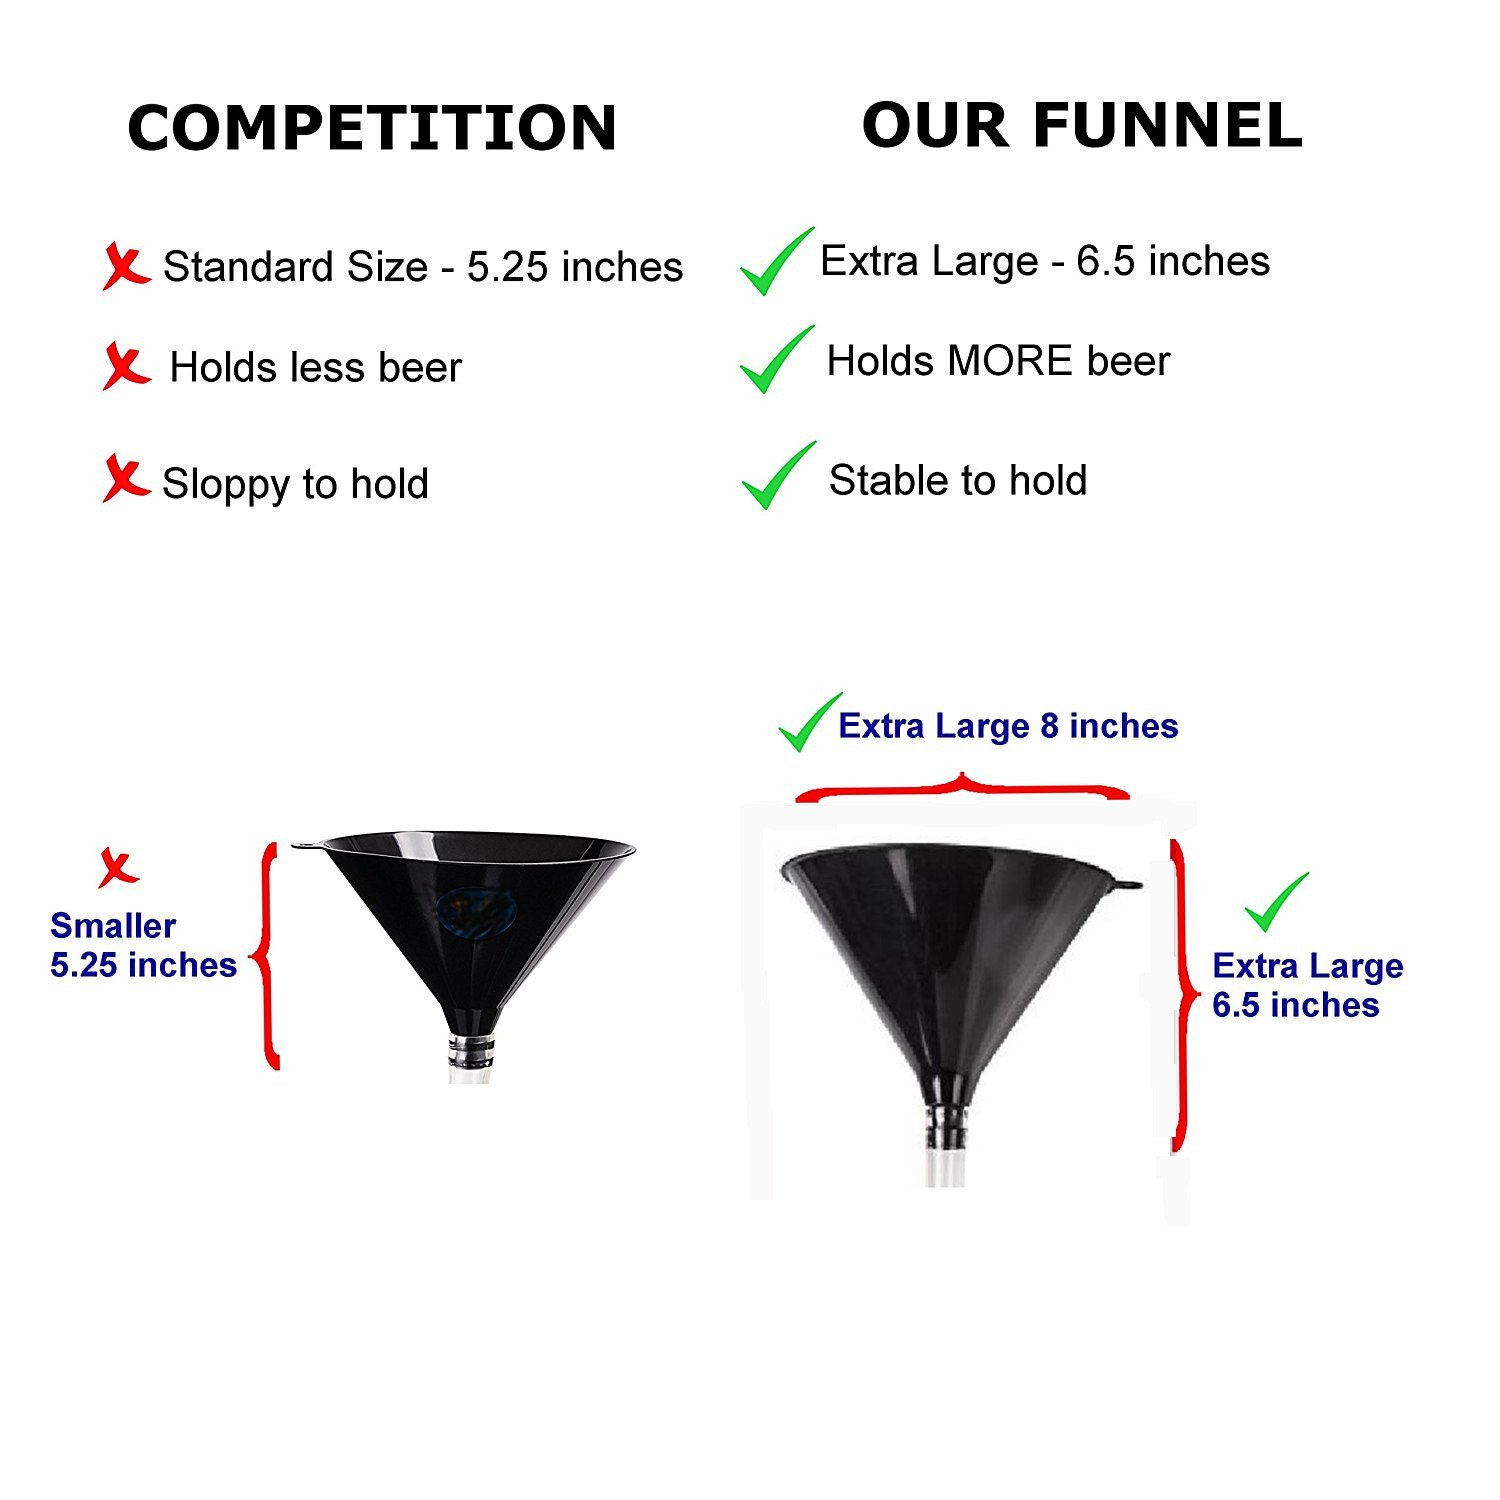 Beer Bong Funnel with Valve - Premium Beer Funnel - 2 Feet Beer Bong Thick Tube & Leakproof Easy Valve - Ideal for Beer Drinking, College Parties (Black) by Naomi Dickerson (Image #4)